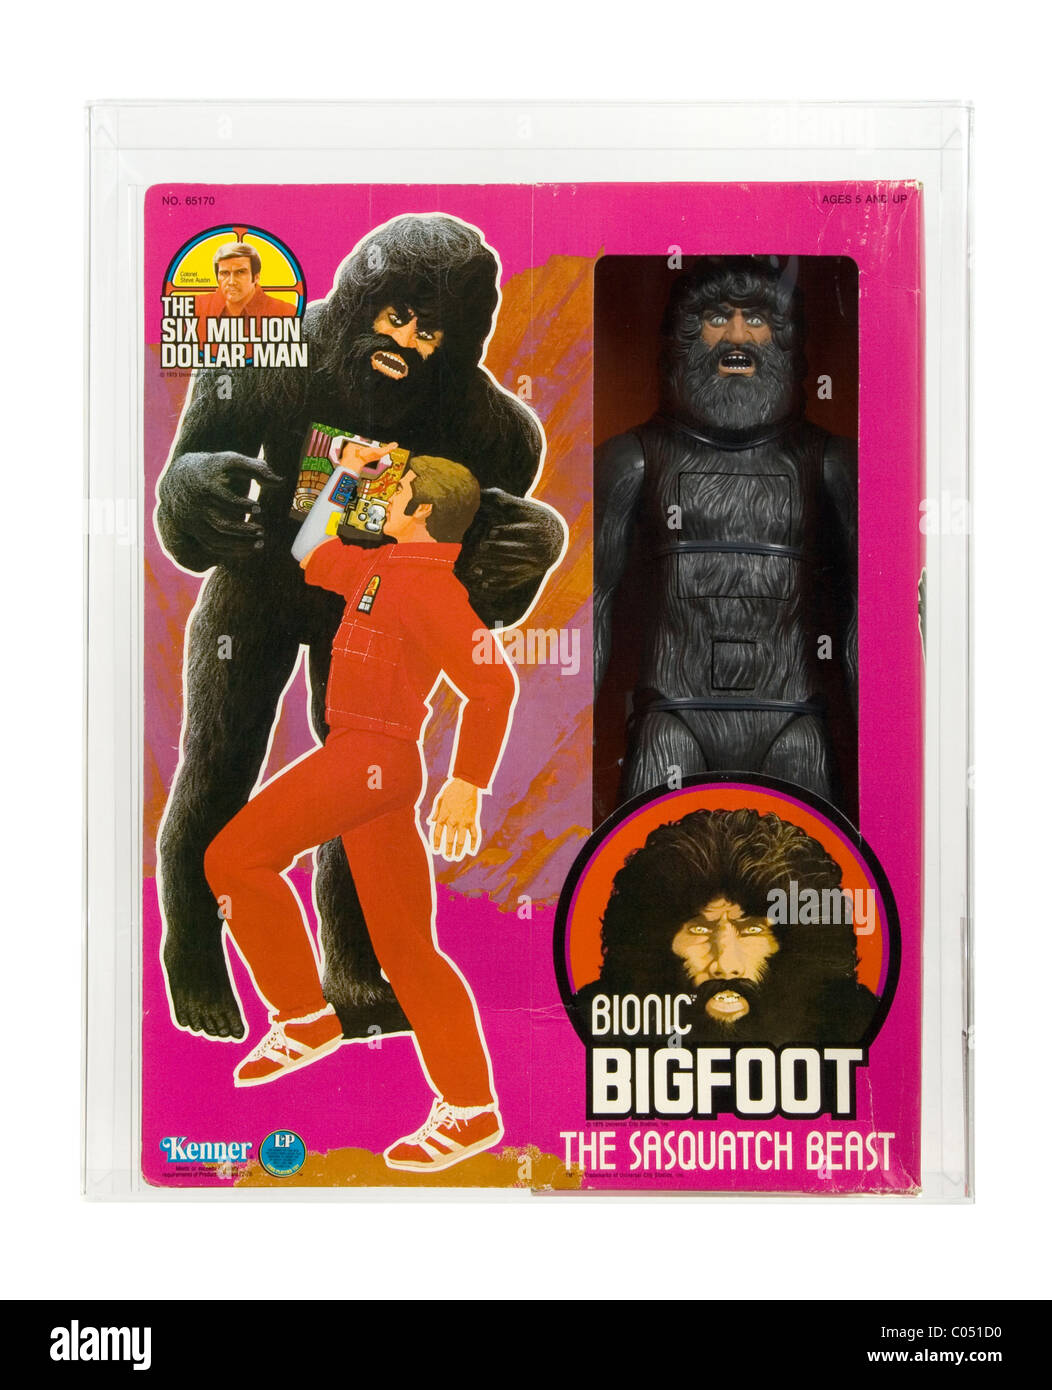 1977 Bionic Bigfoot From The Six Million Dollar Man Series Made By Kenner Misb Nrfb Afa 75 Ex Nm Excellent Near Mint